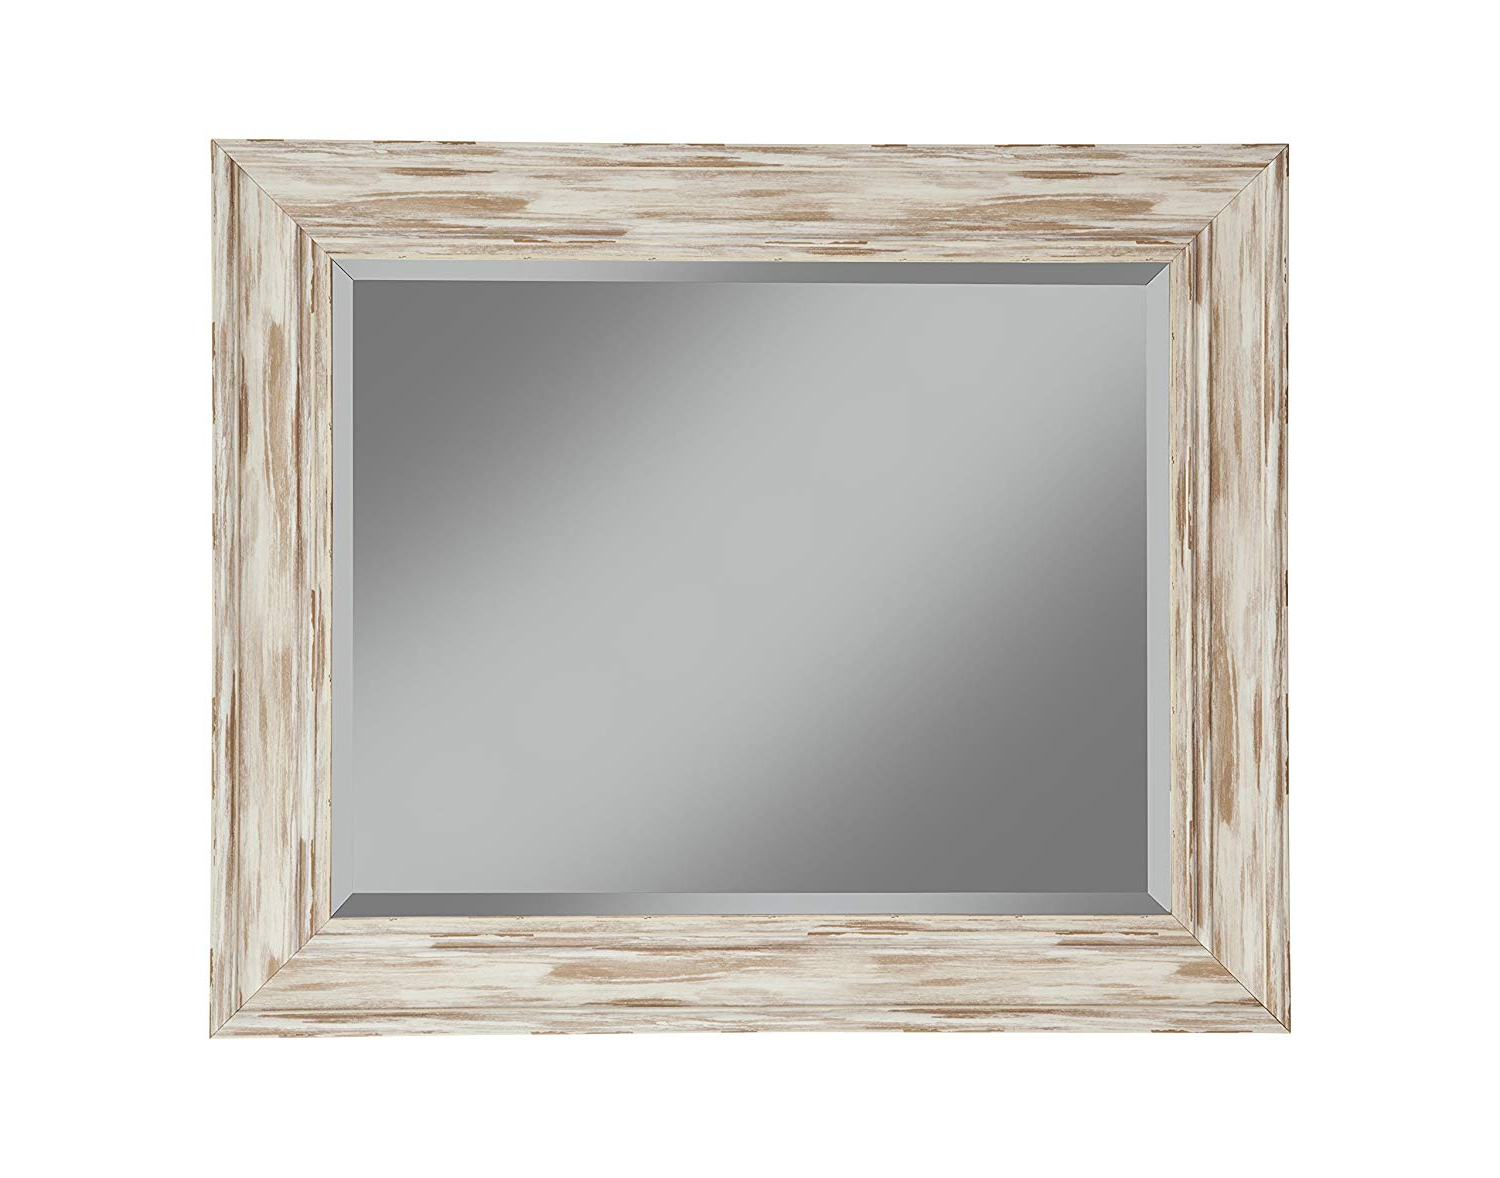 "Antique White Wall Mirrors With Regard To Well Known Sandberg Furniture Farmhouse Wall Mirror, Antique White Wash, 36"" X 30"" (Gallery 19 of 20)"